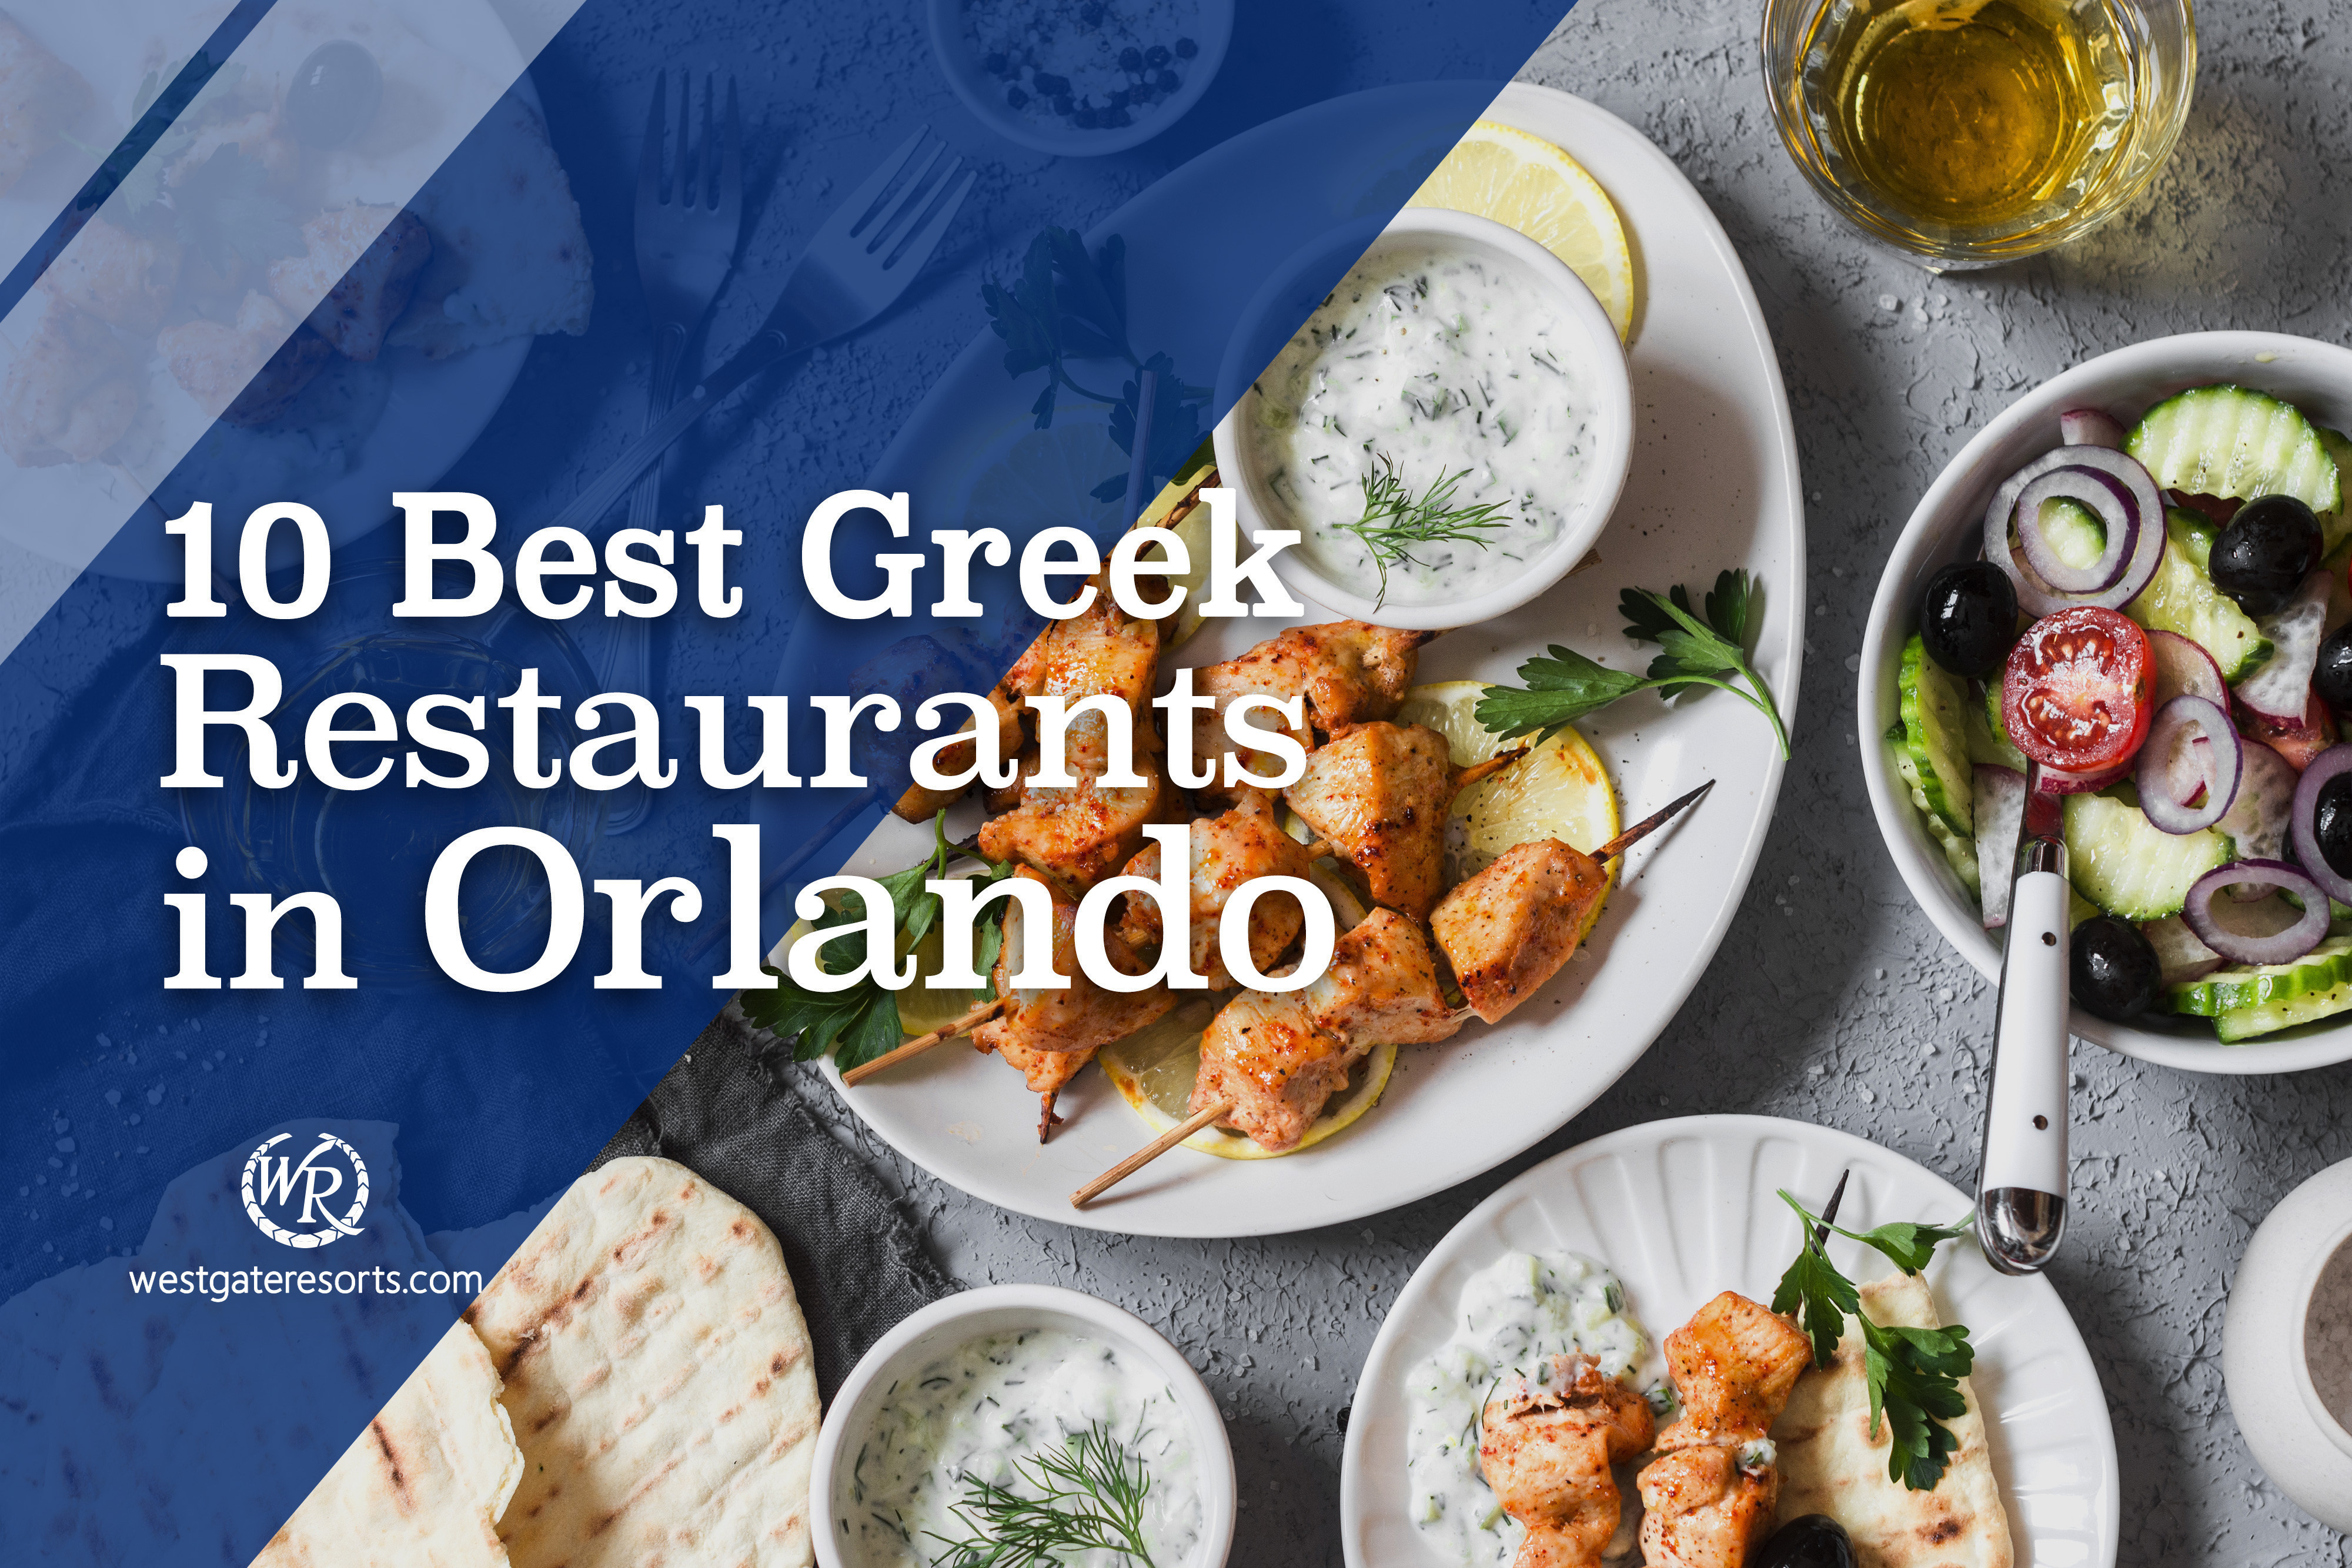 10 Best Greek Restaurants in Orlando